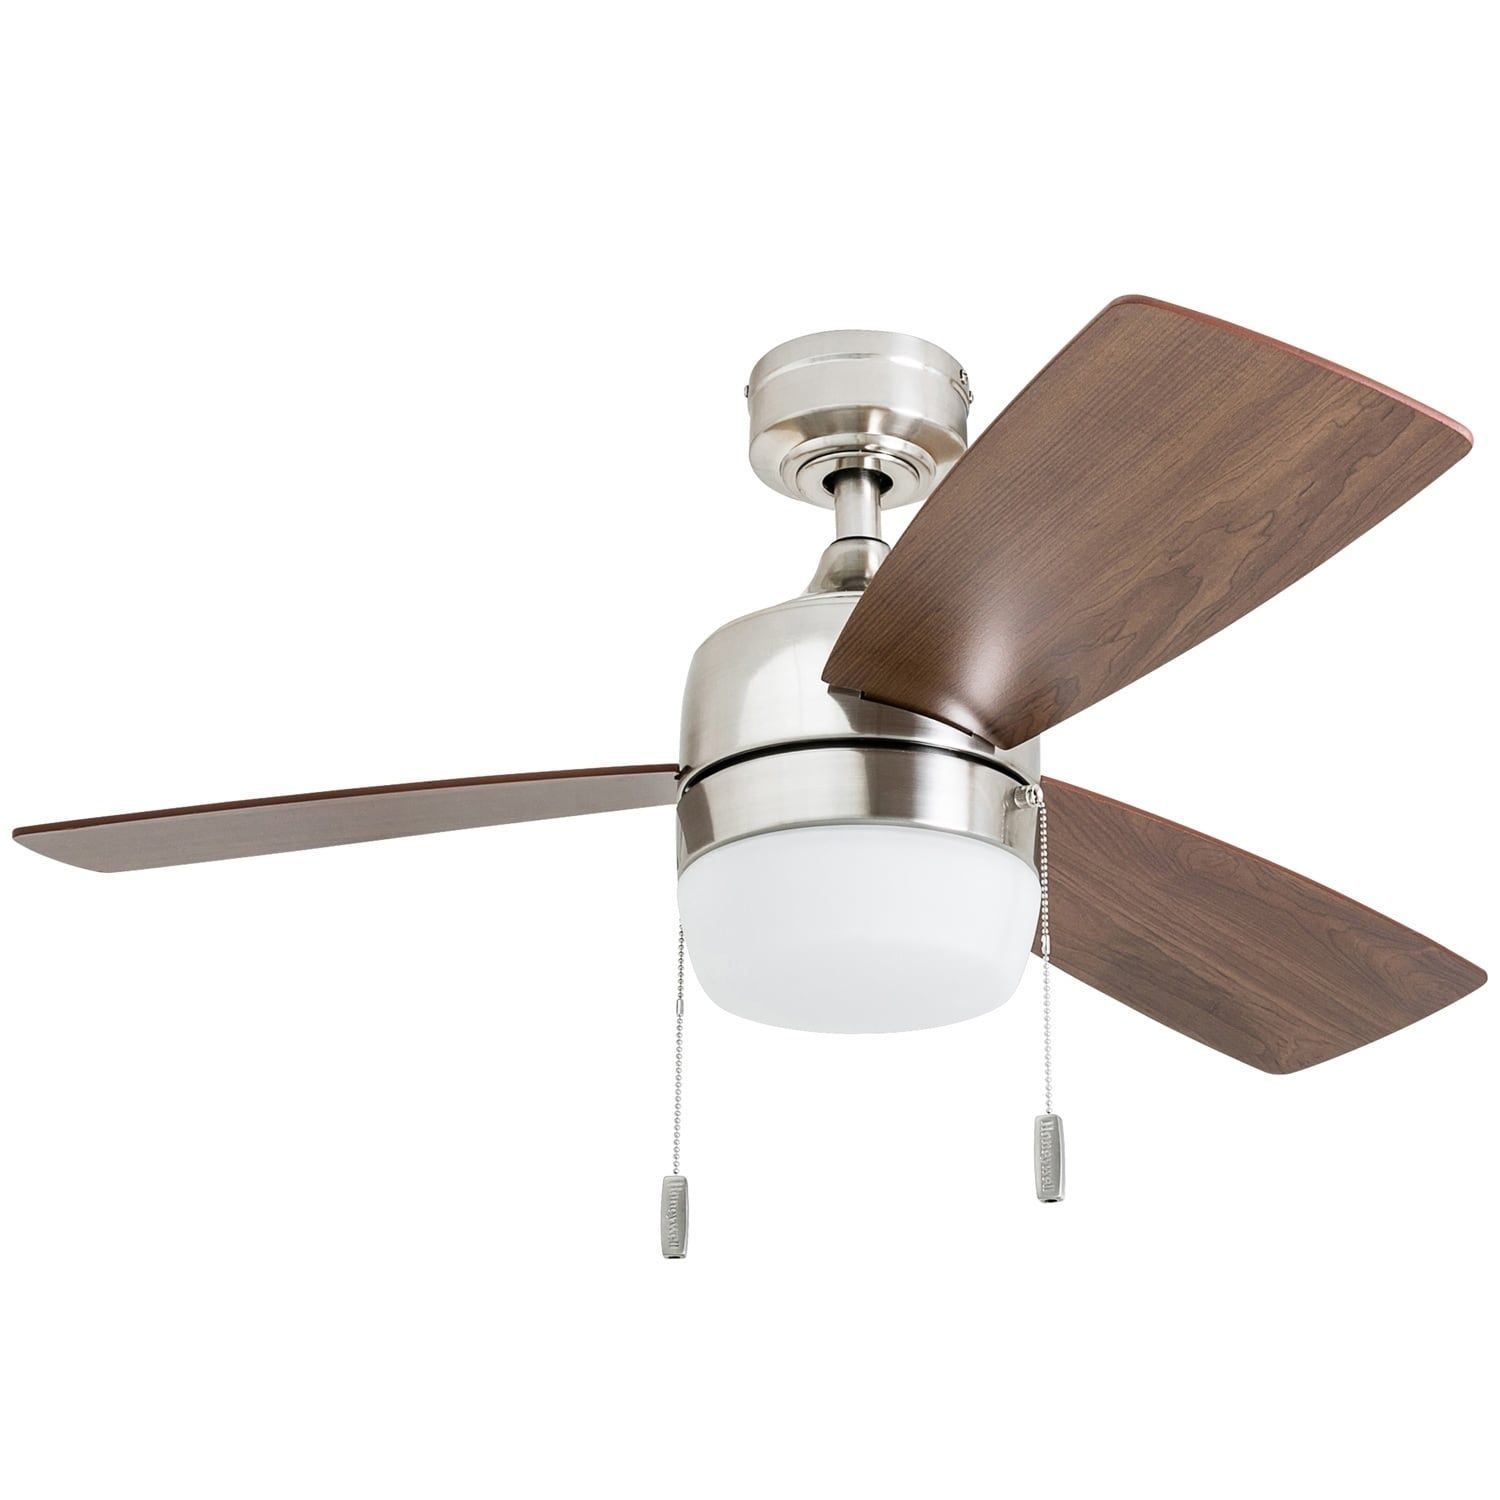 Honeywell Barcadero Modern Brushed Nickel Led Ceiling Fan With